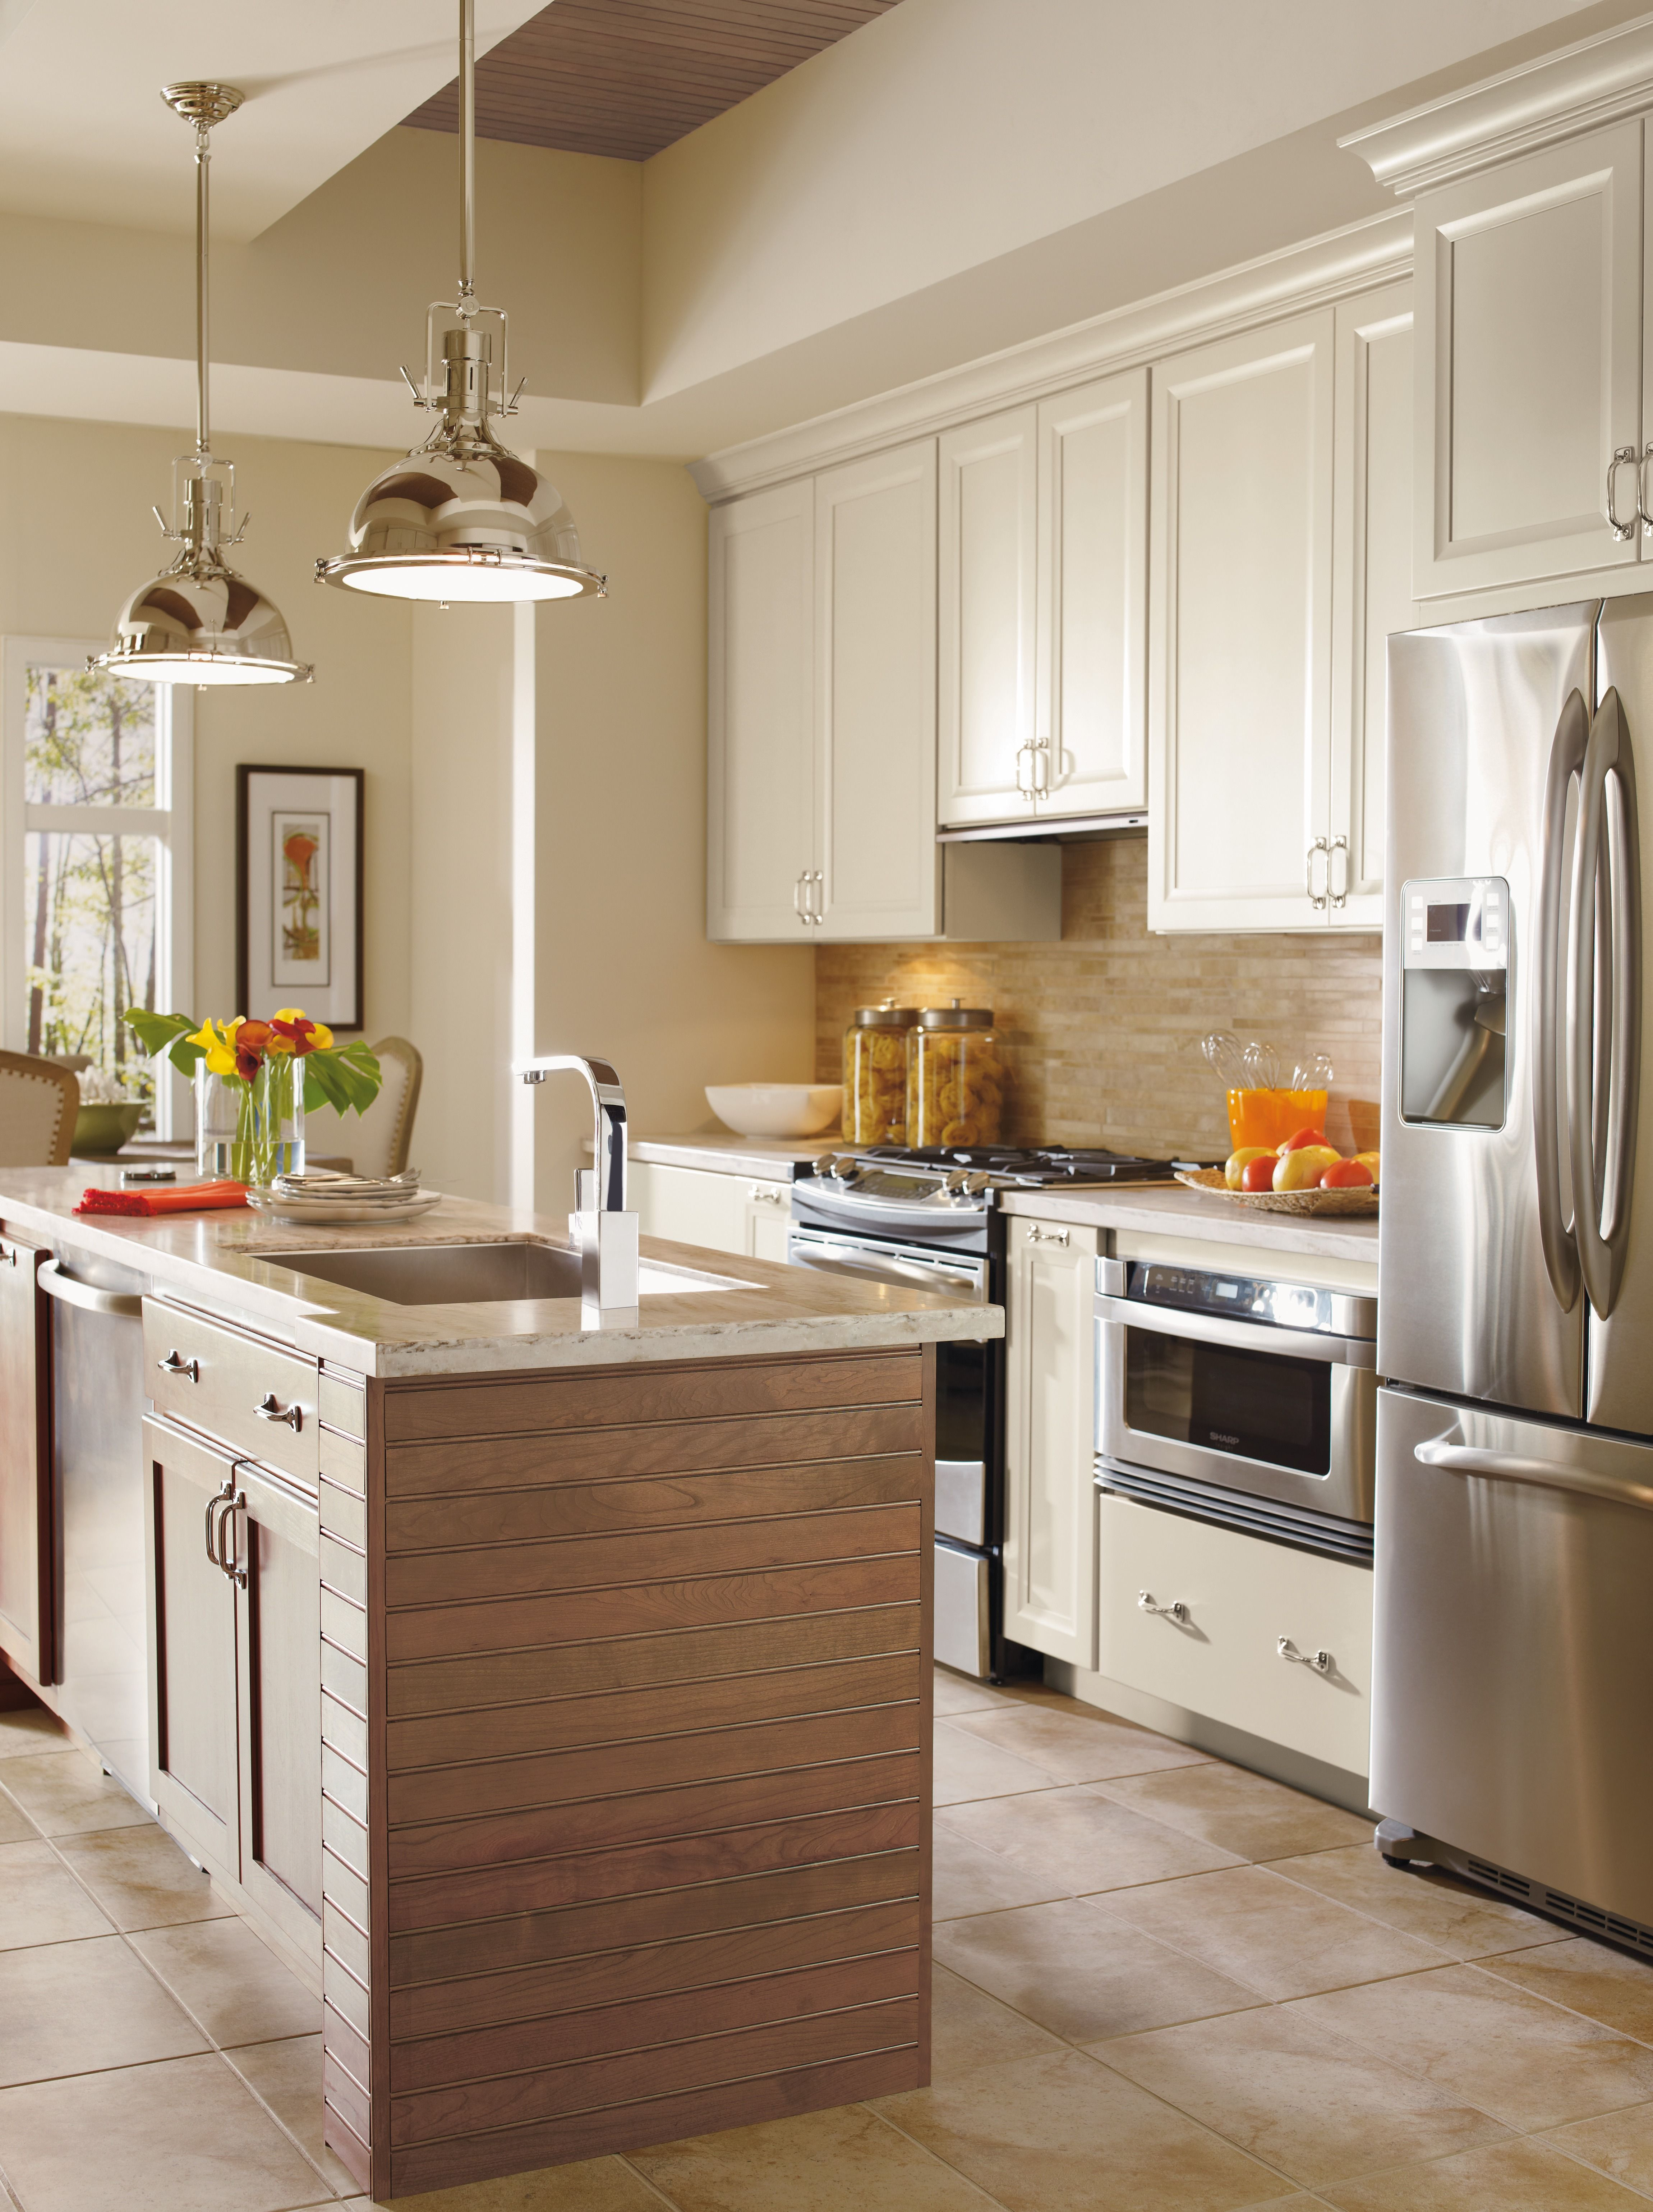 Cherry Riverbed On The Island And Ceiling Complement The Softness Of Dynasty S Maple Magnol Kitchen Renovation Design Kitchen Cabinet Design Kitchen Renovation